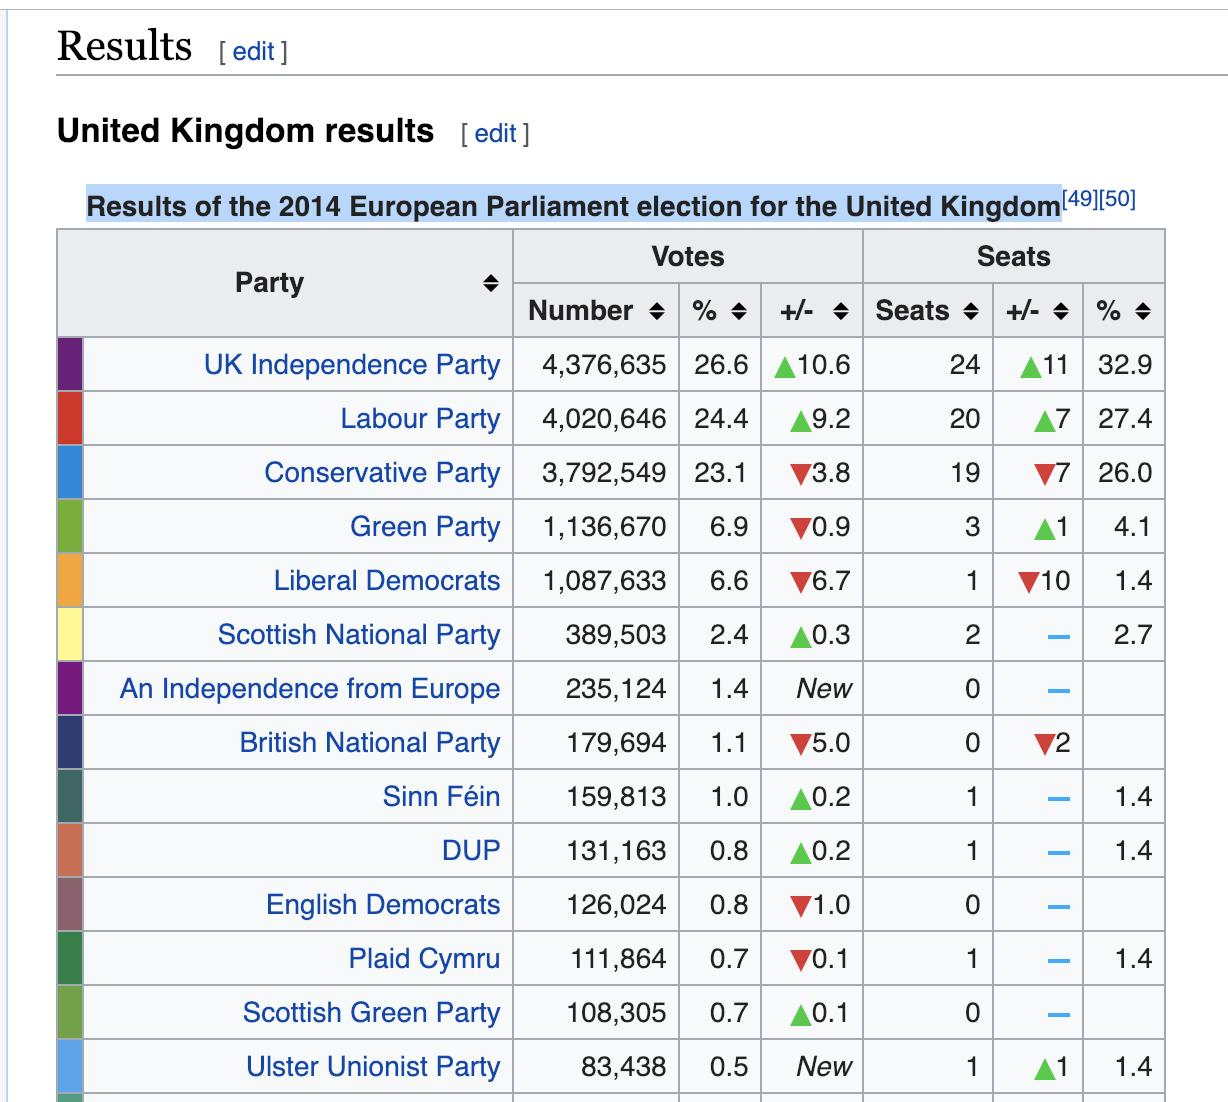 The Wikipedia table with hte 2014 EP election in the UK